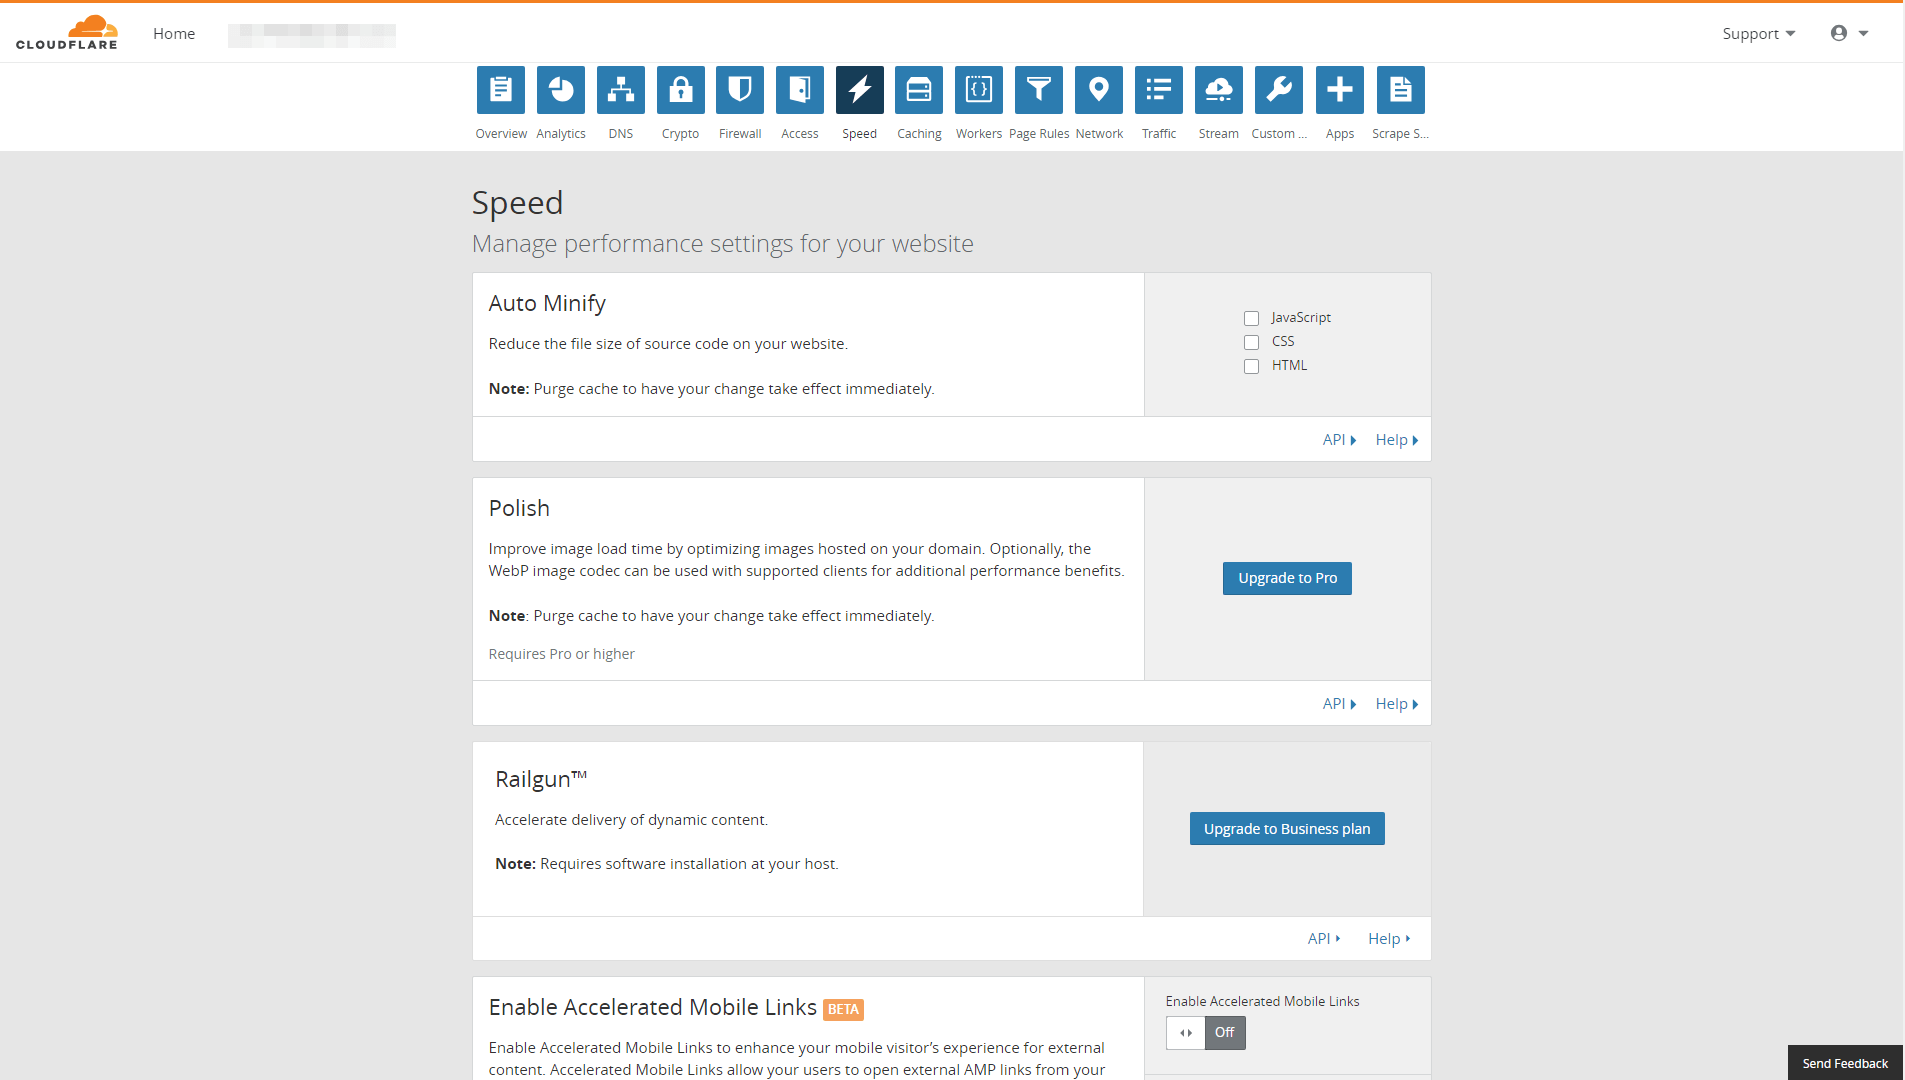 Cloudflare's Speed tab.